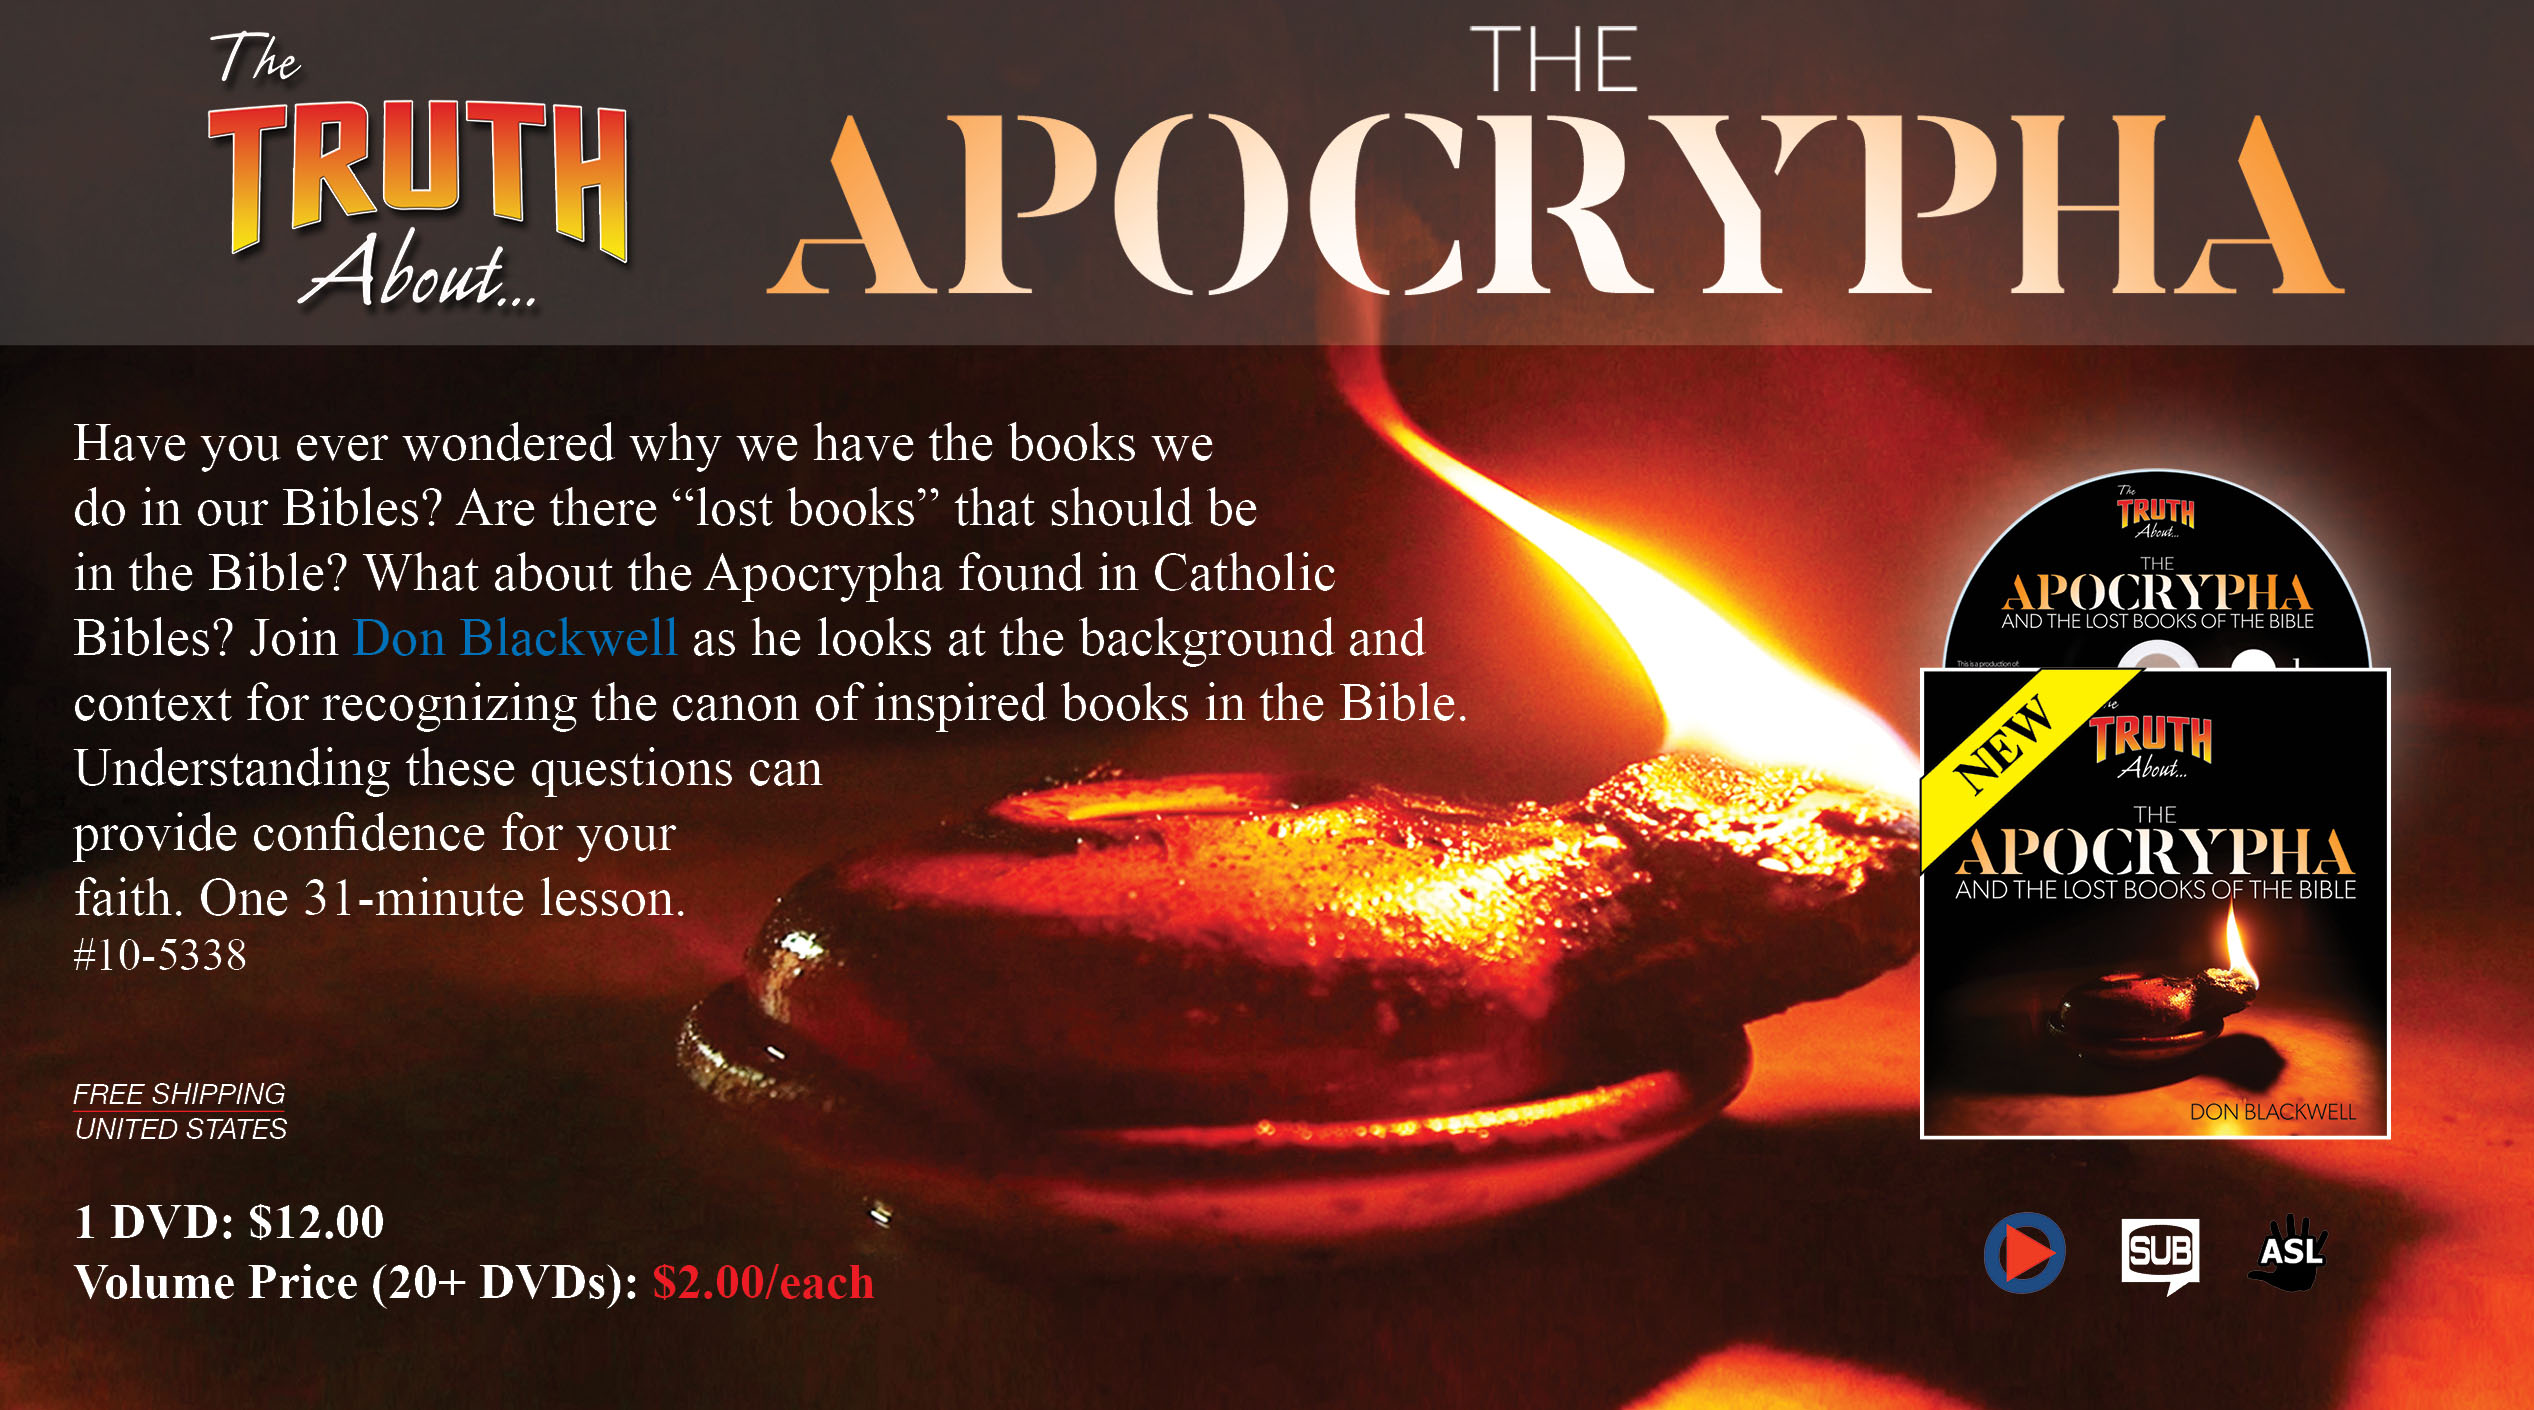 The Apocrypha on DVD